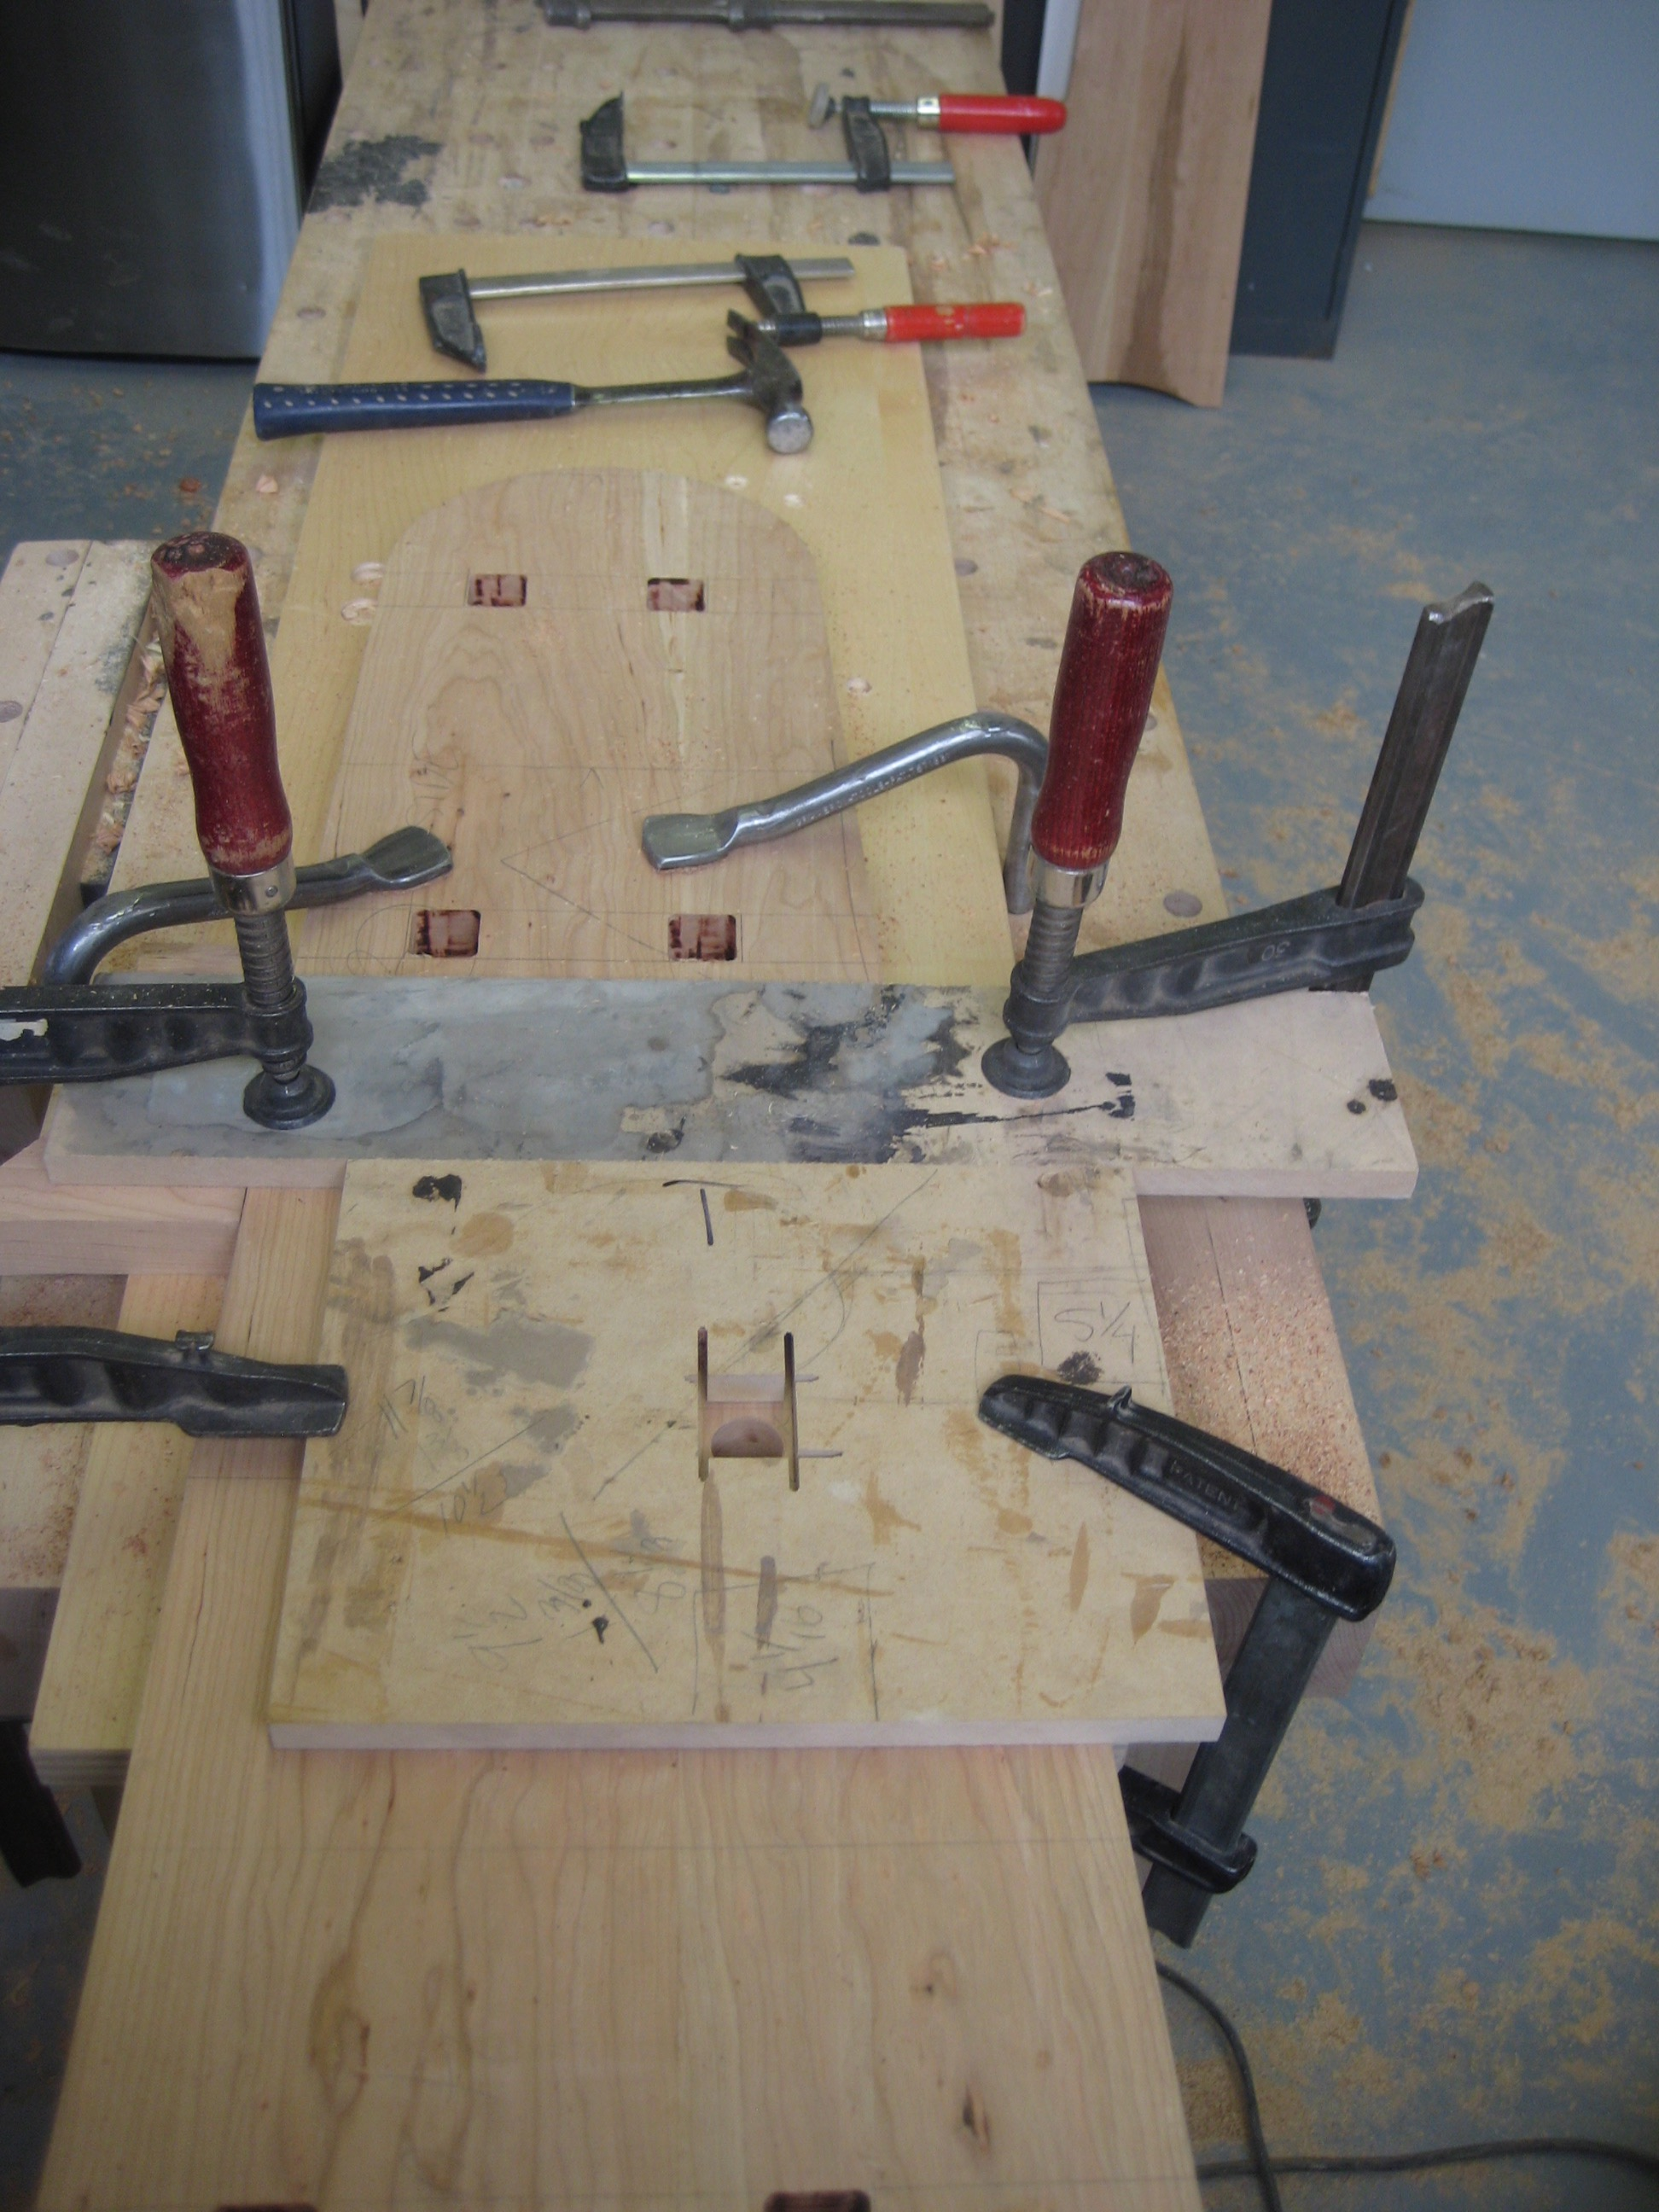 Then, using a router template and collar, and being careful to mark my layout lines, I routed more of the square hole out.